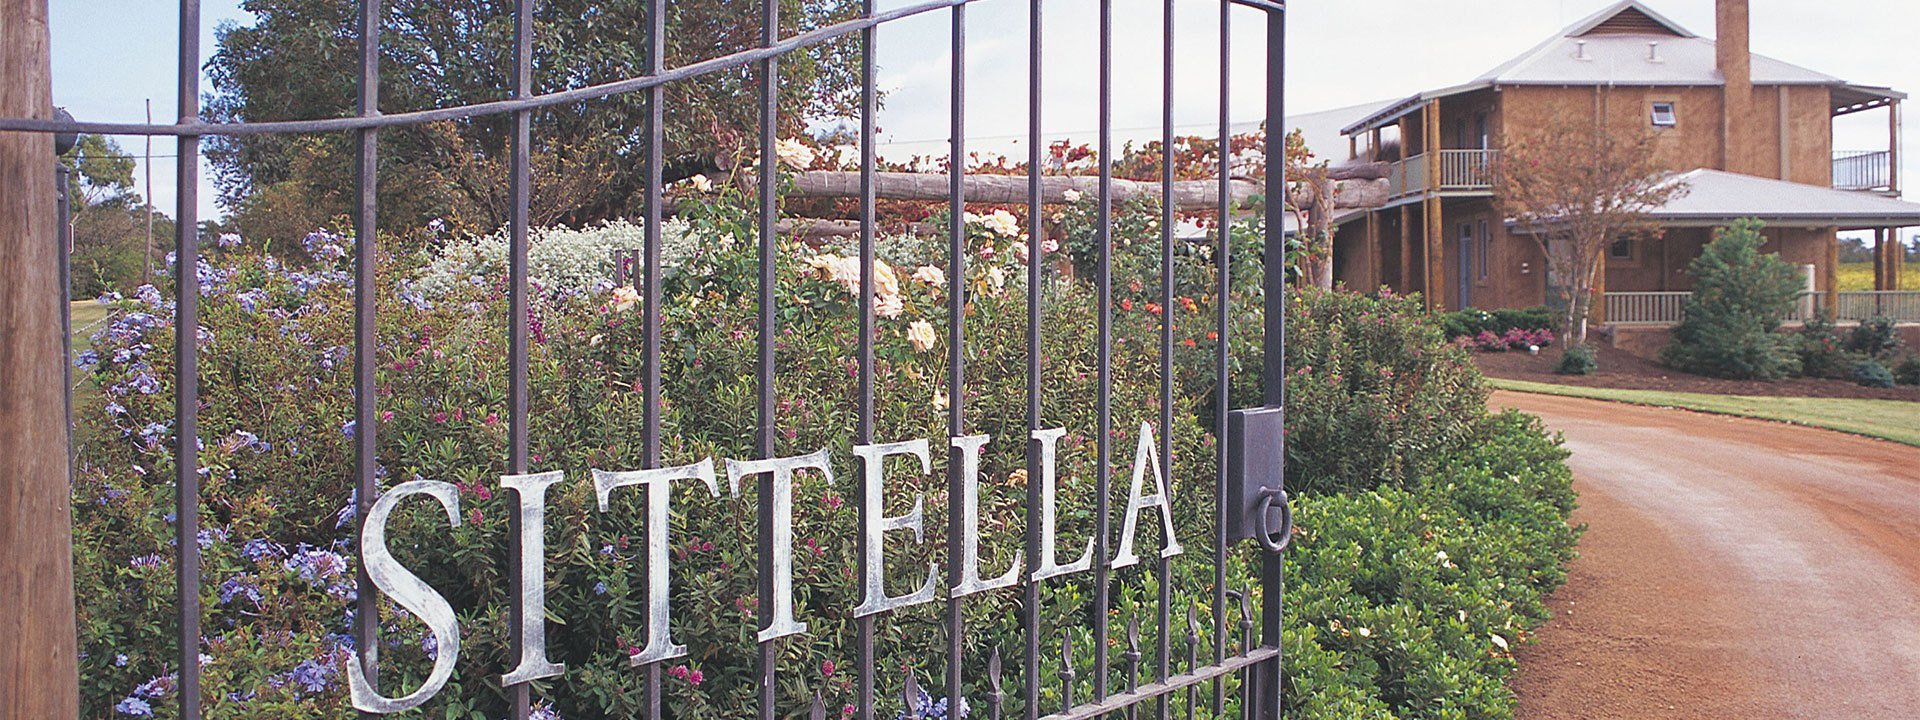 Visit premier wineries like Sittella Winery at Swan Valley